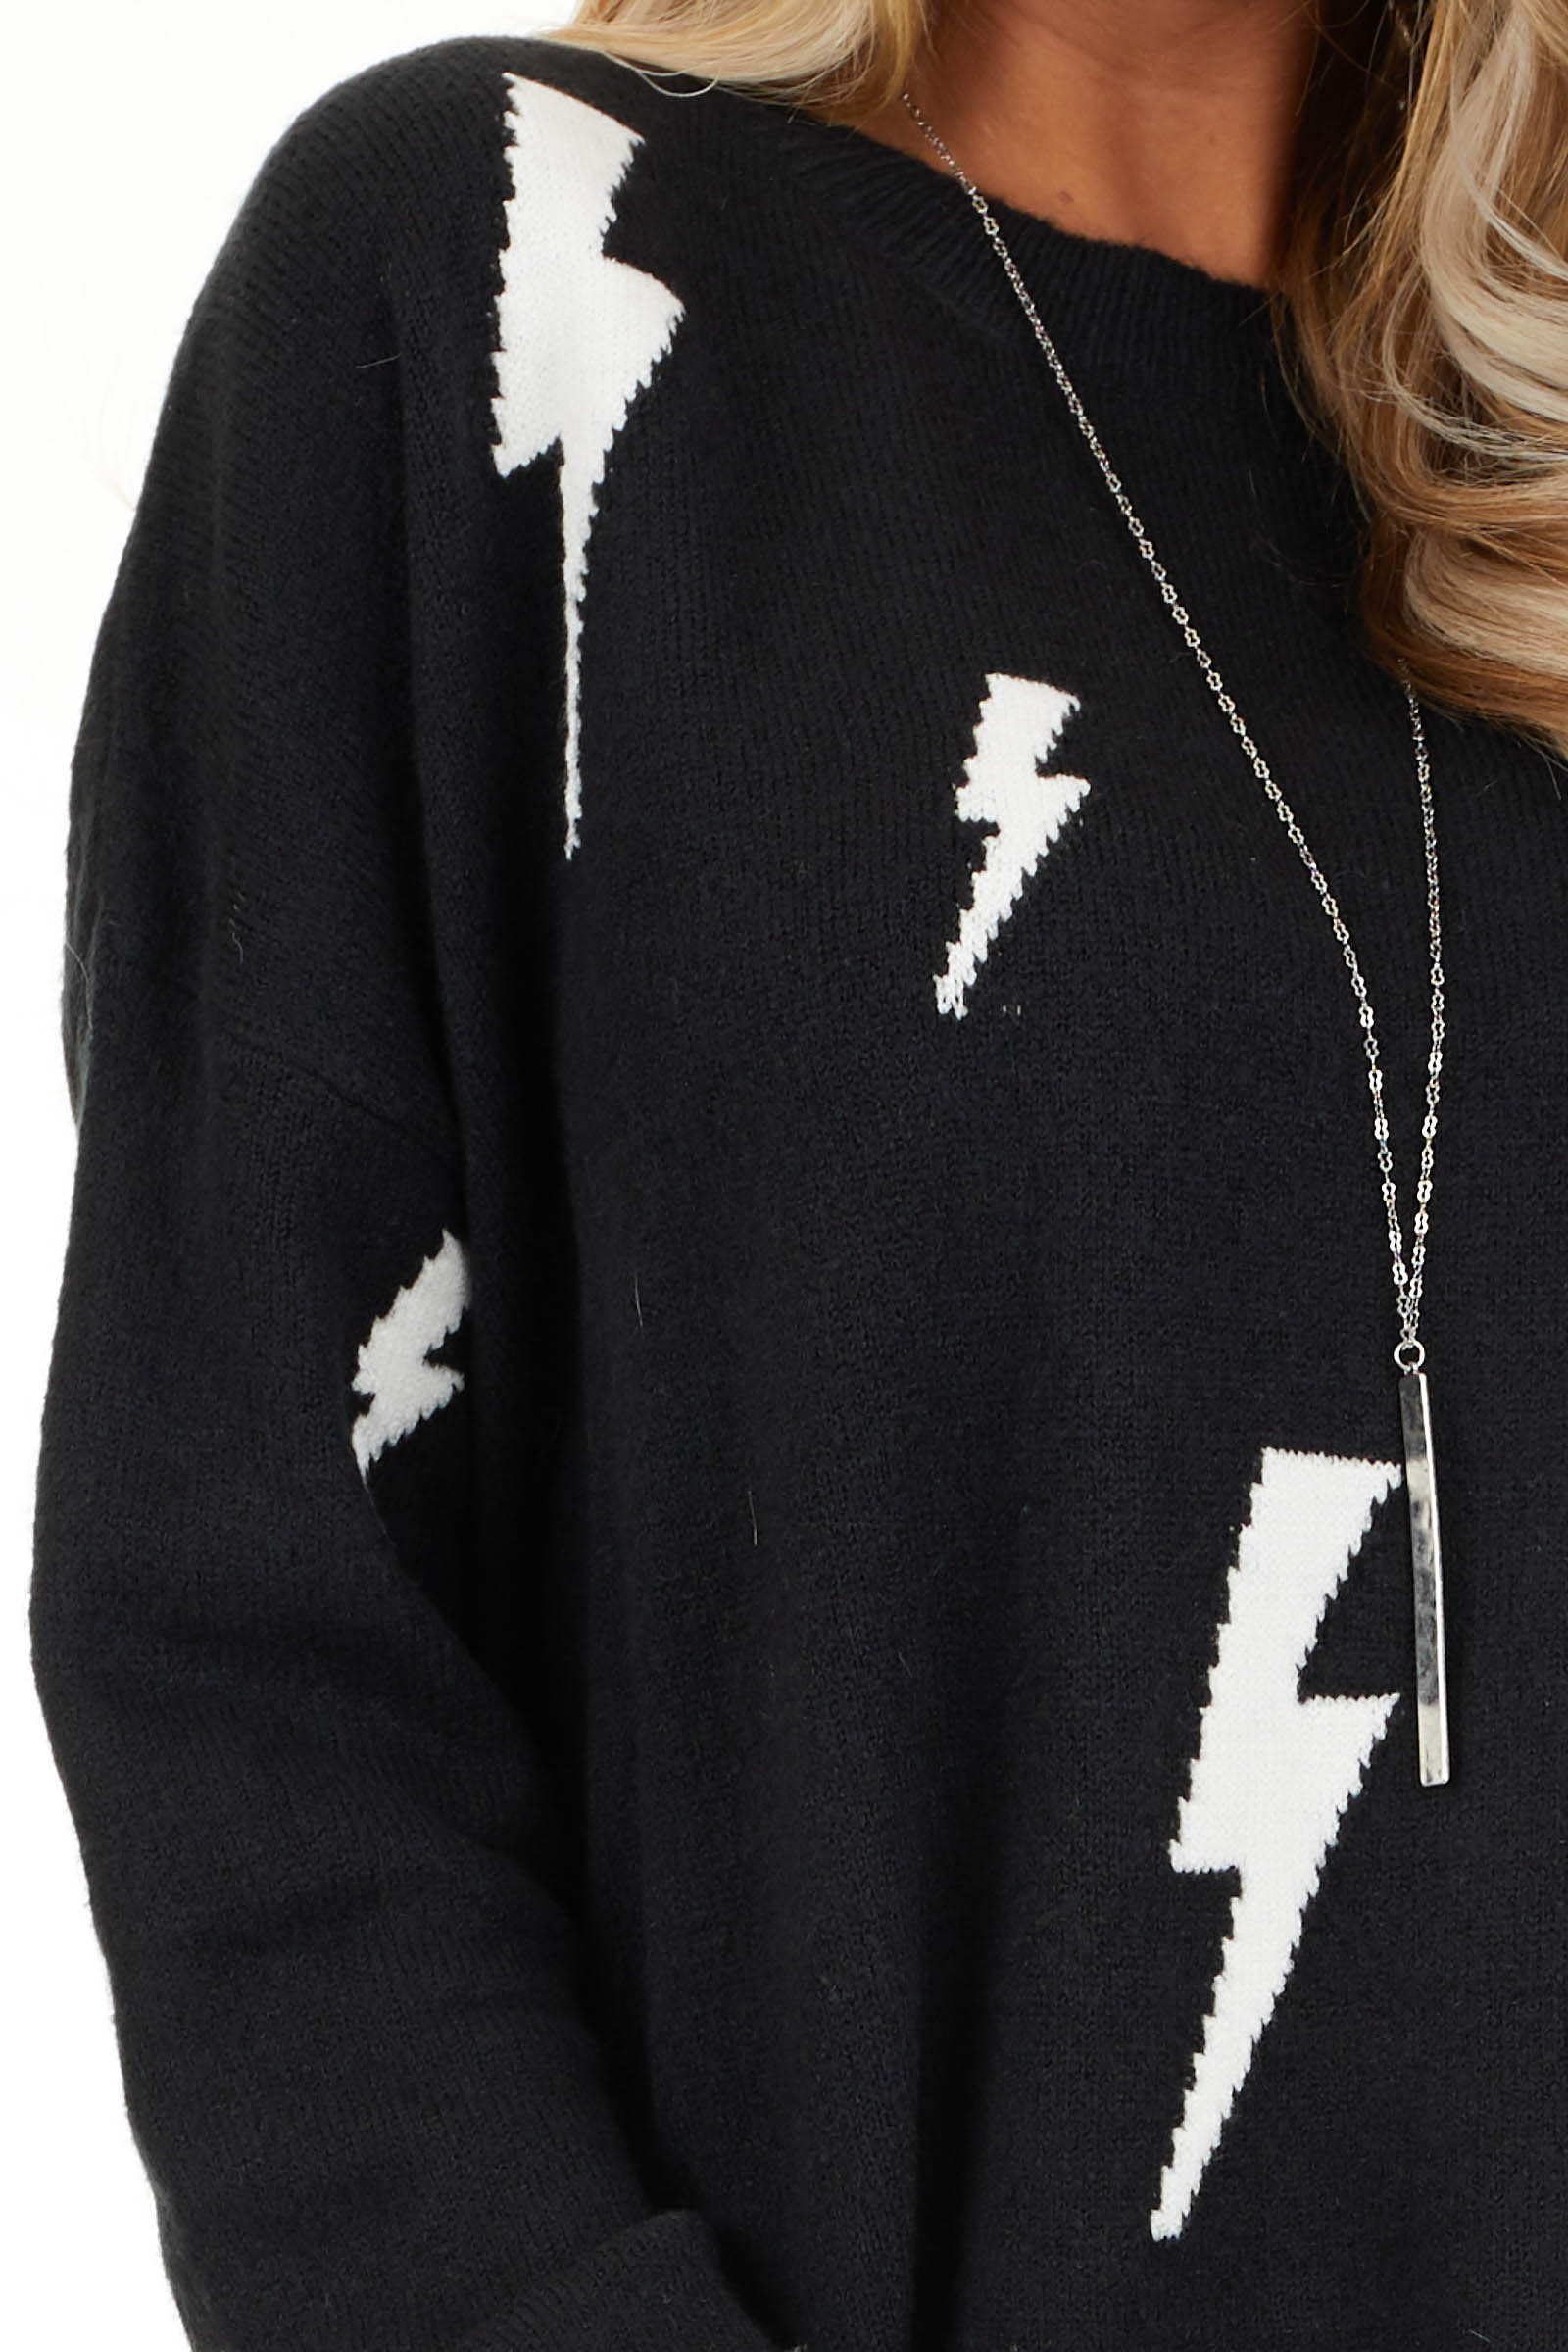 Black Long Sleeve Pullover Sweater with Lightning Bolt Print detail